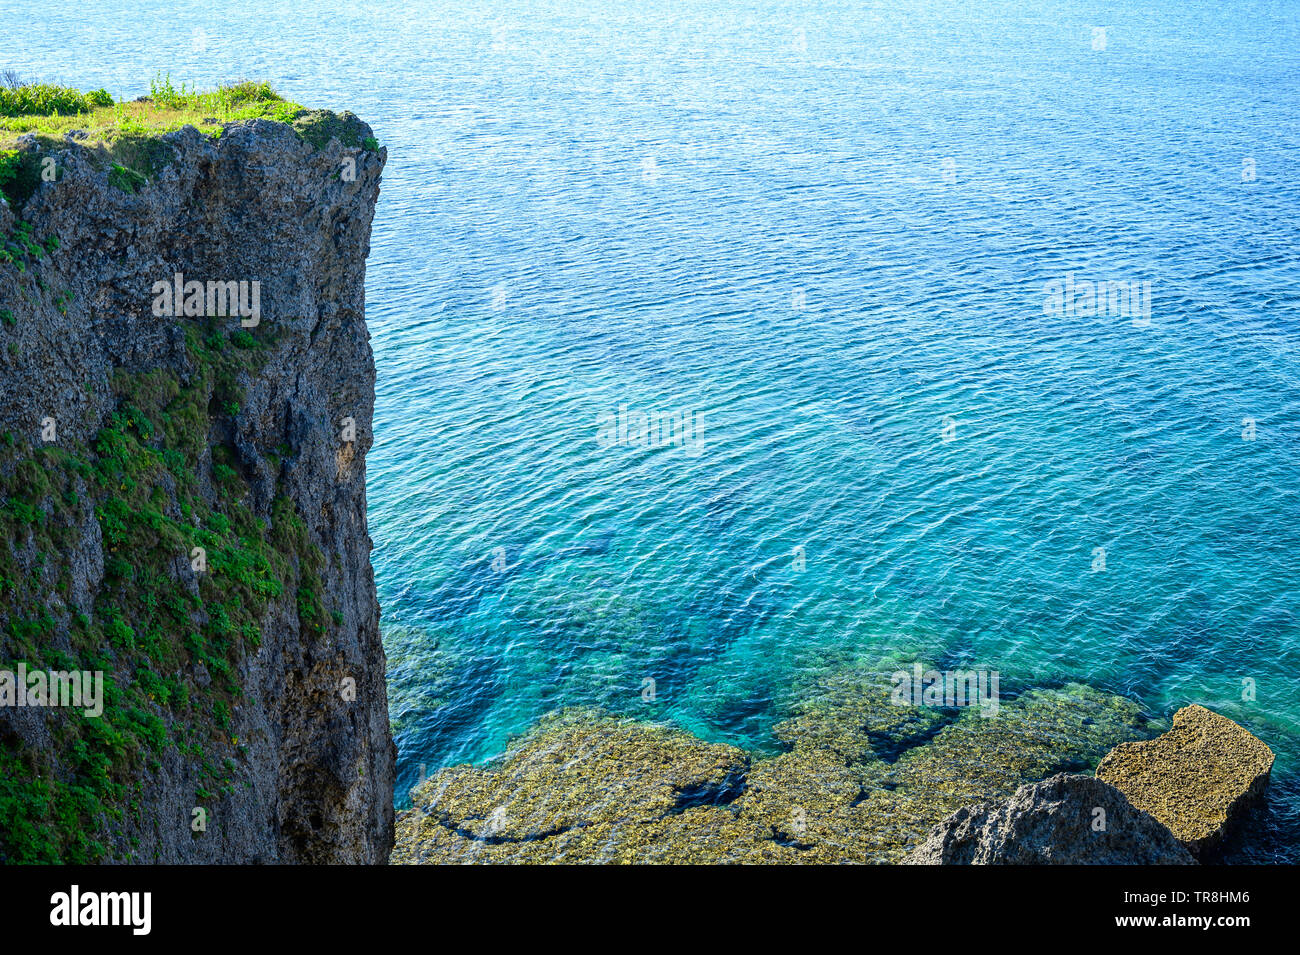 Clear view of Okinawan coast - Stock Image